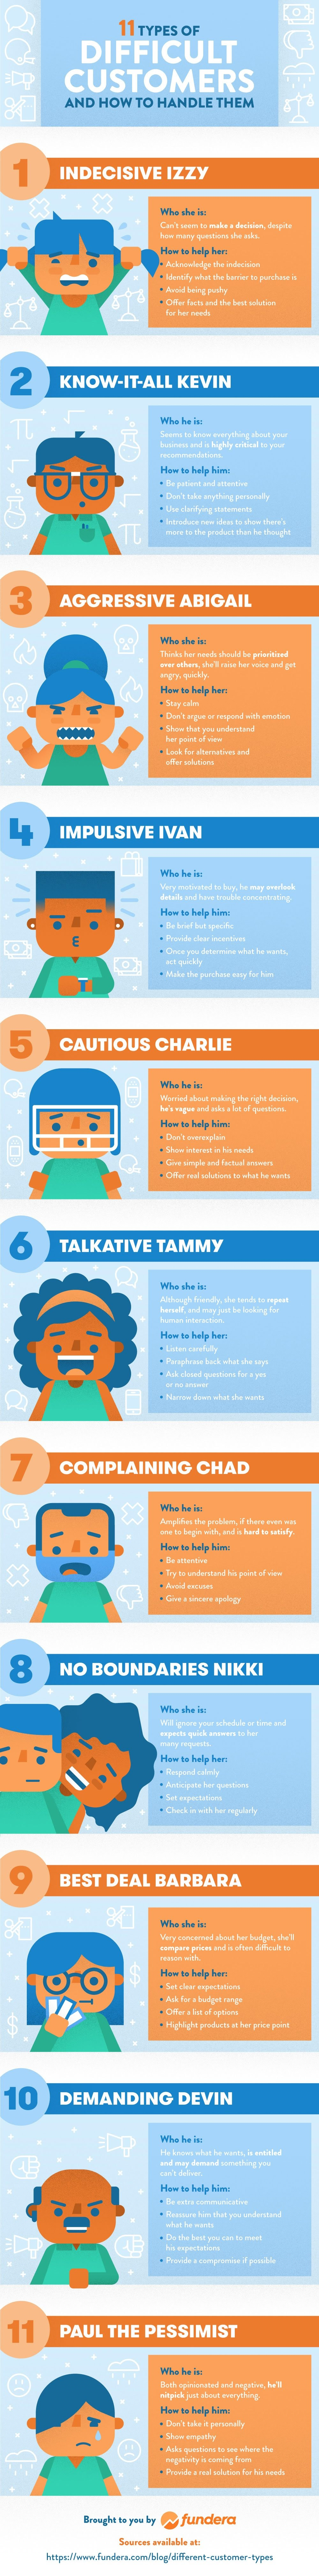 11 Types of Difficult Customers and How to Handle Them - #infographic